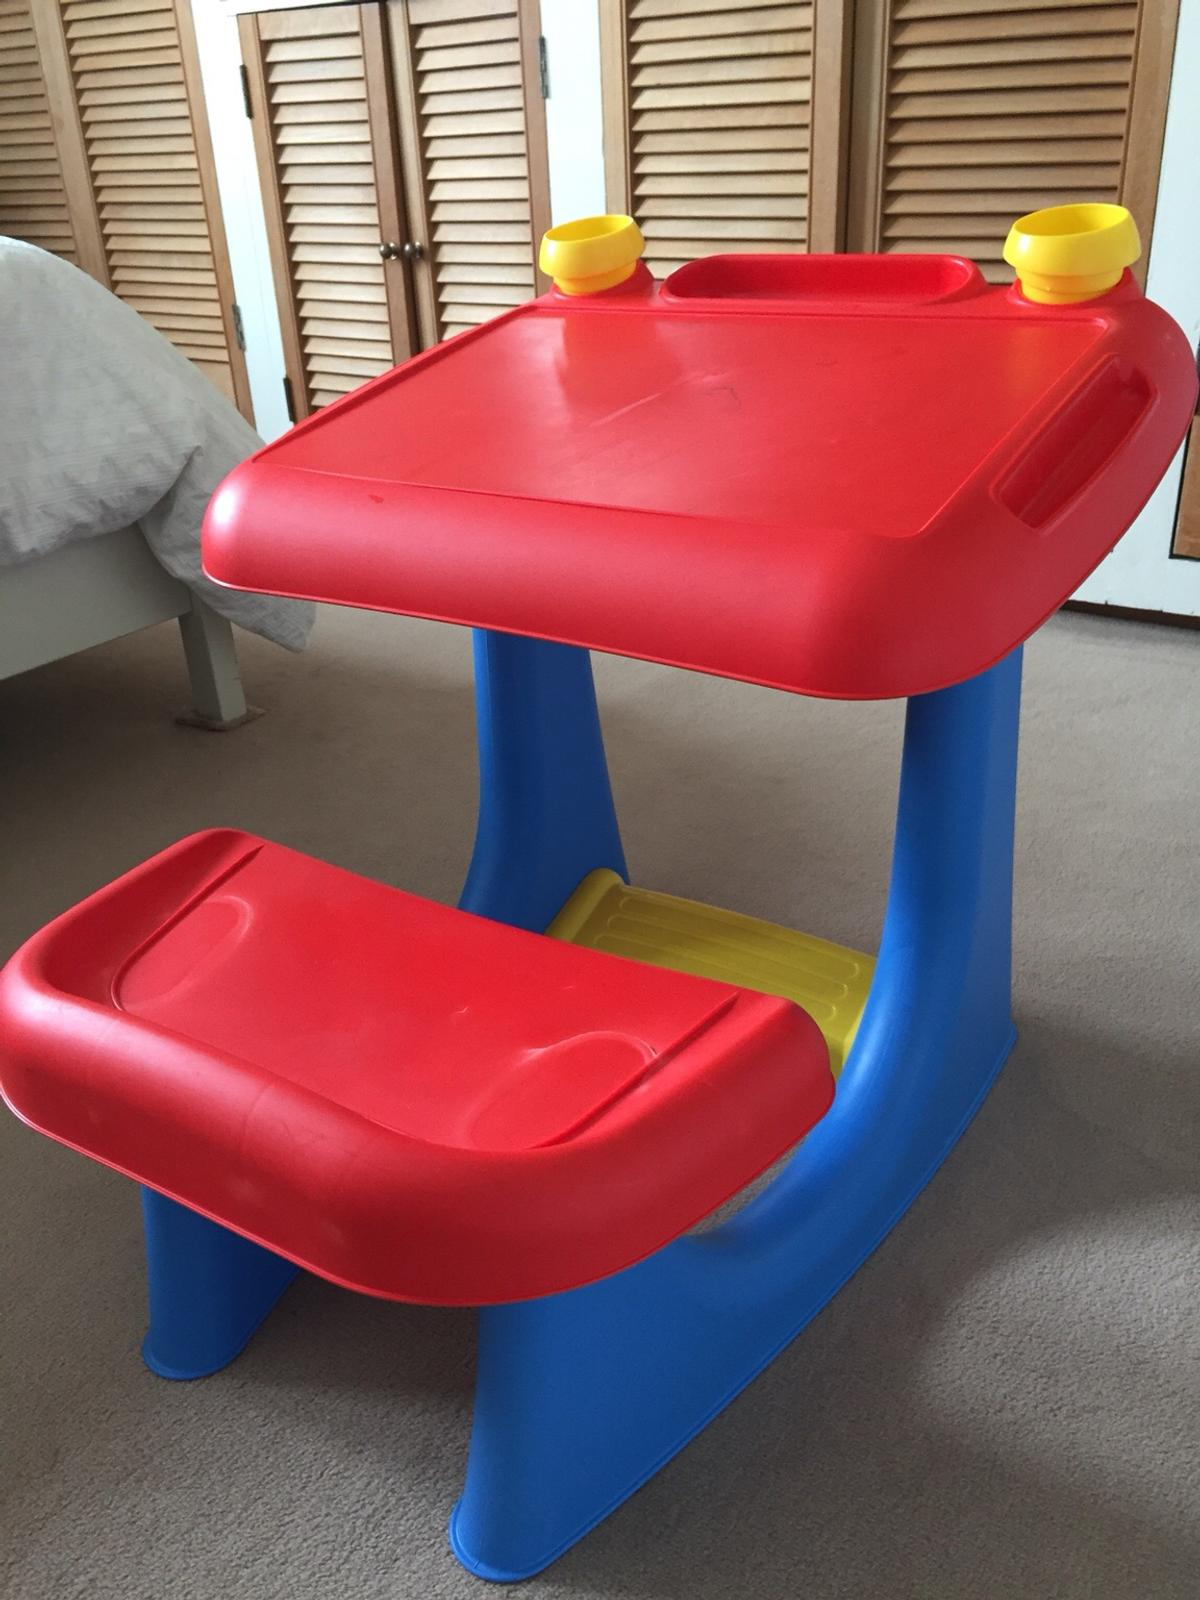 Toddler Child Desk And Chair In W4 Hounslow For Free For Sale Shpock